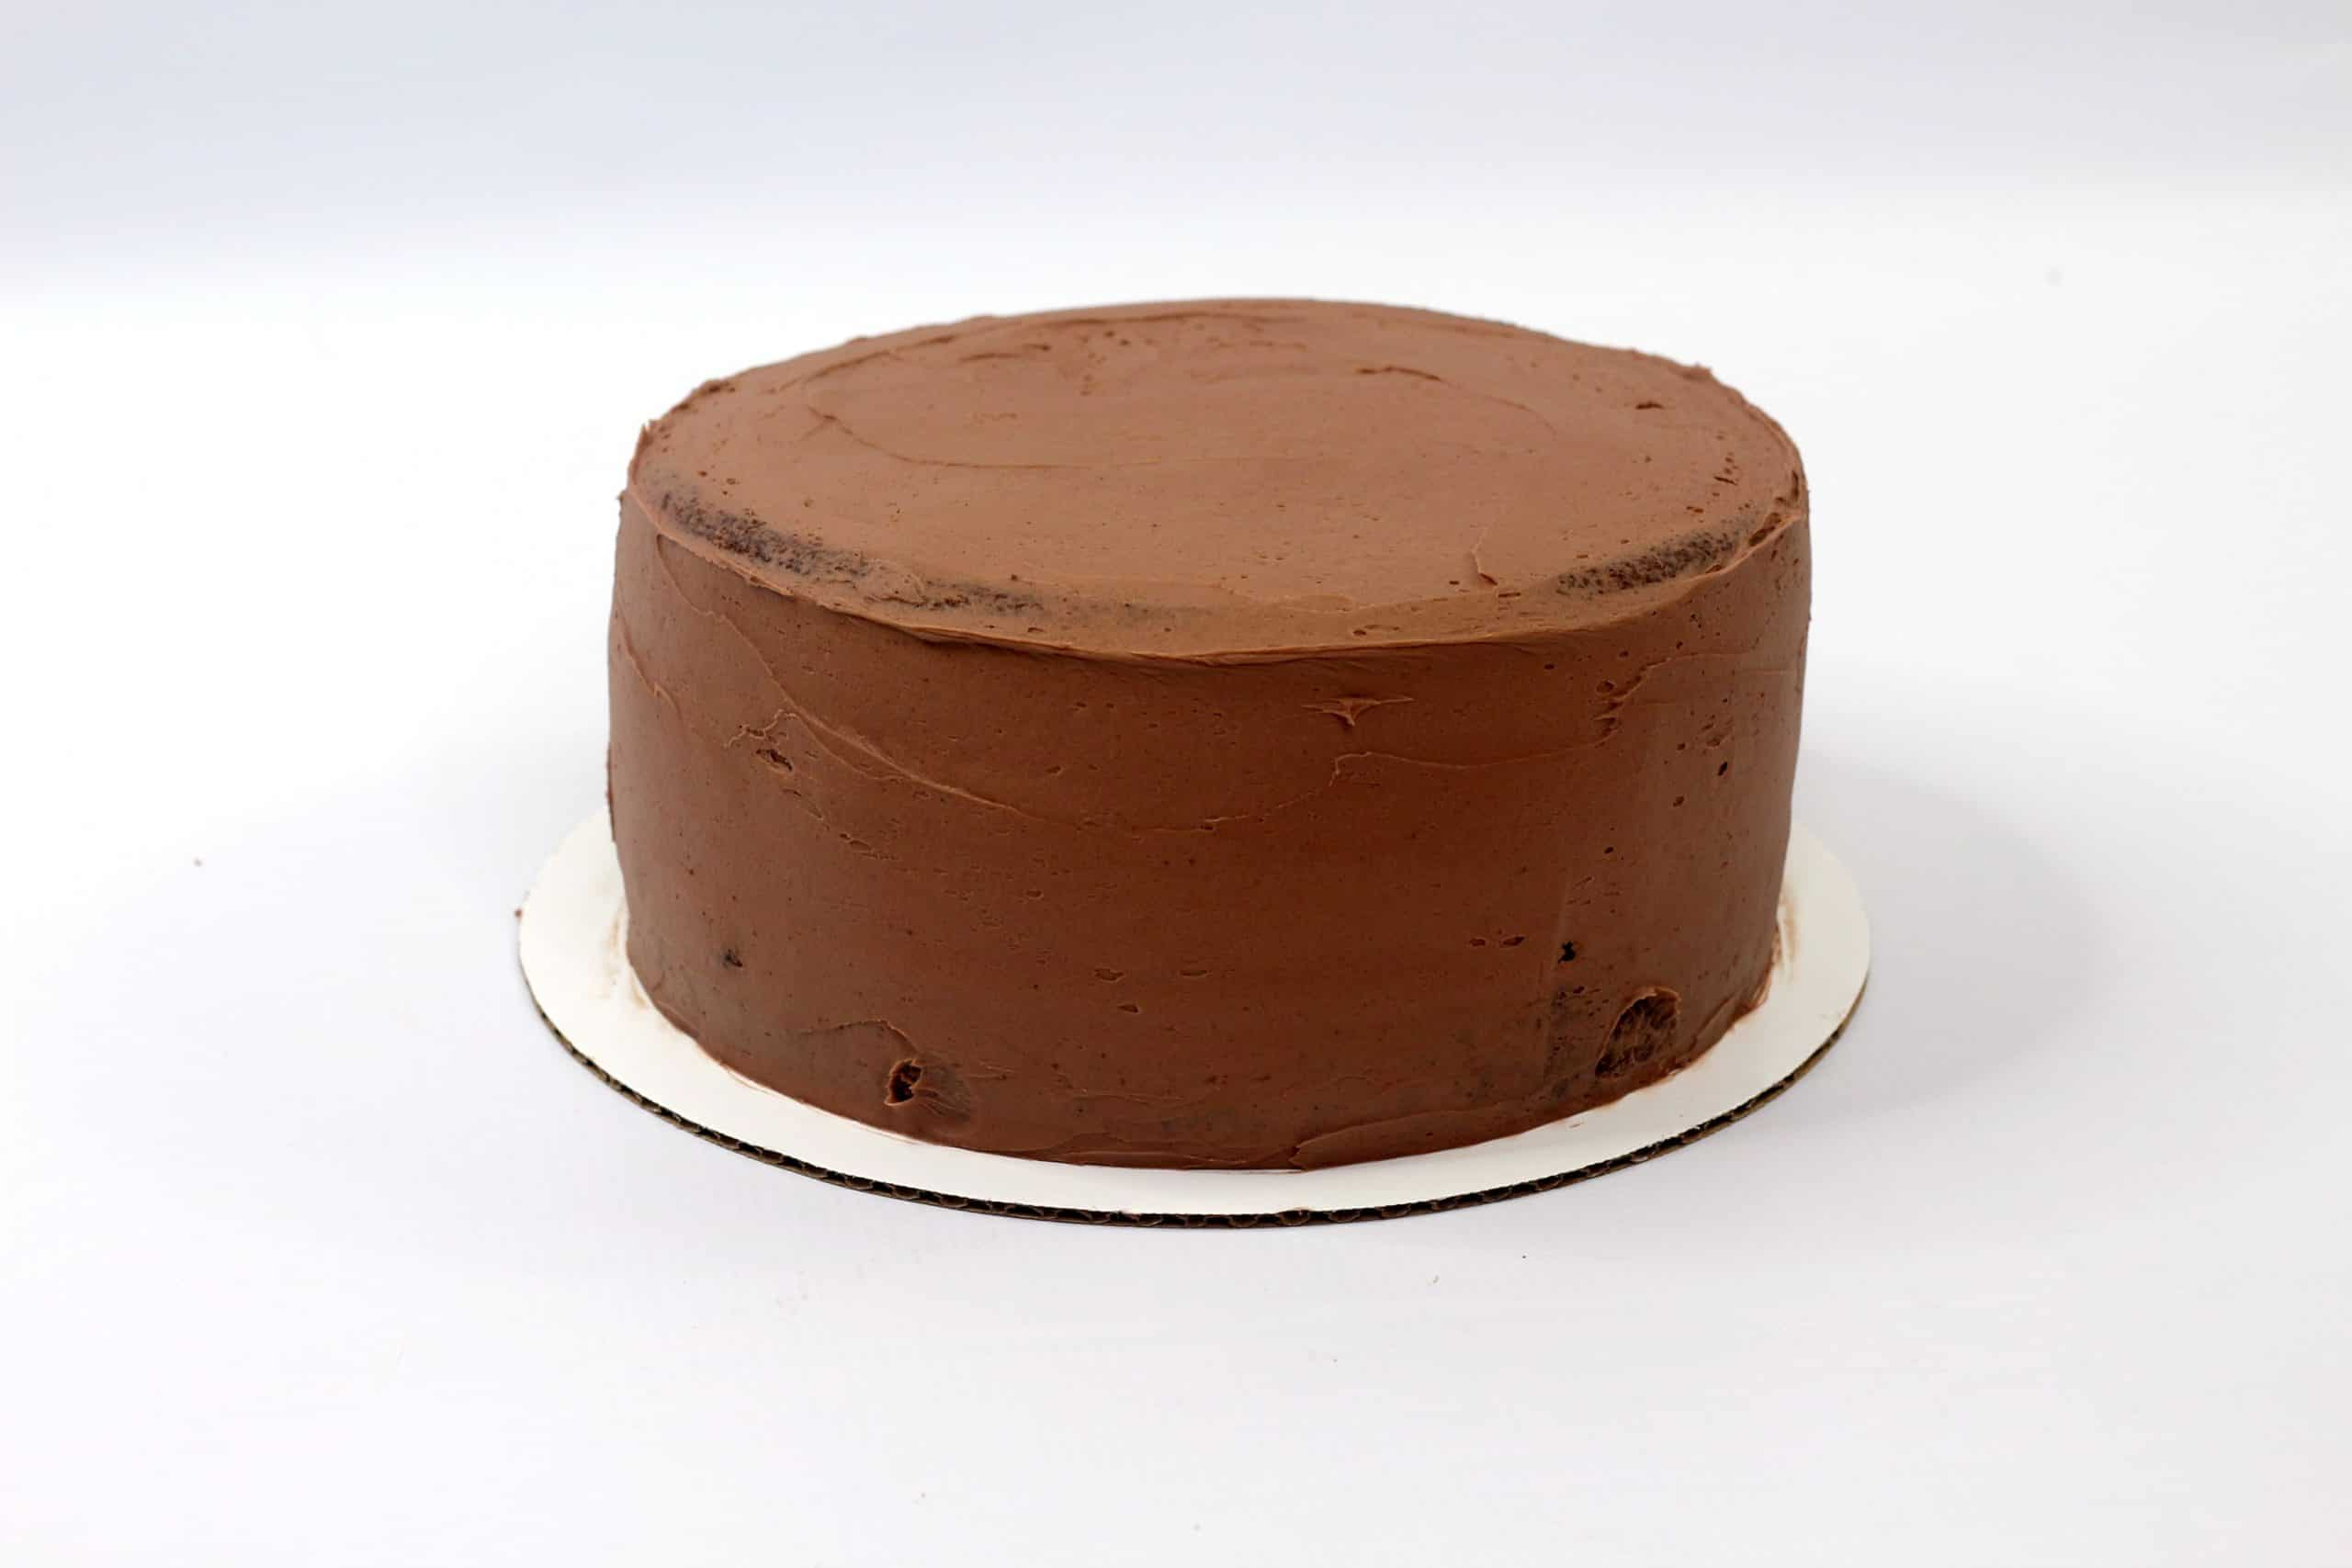 chocolate frosting on hot cocoa cake